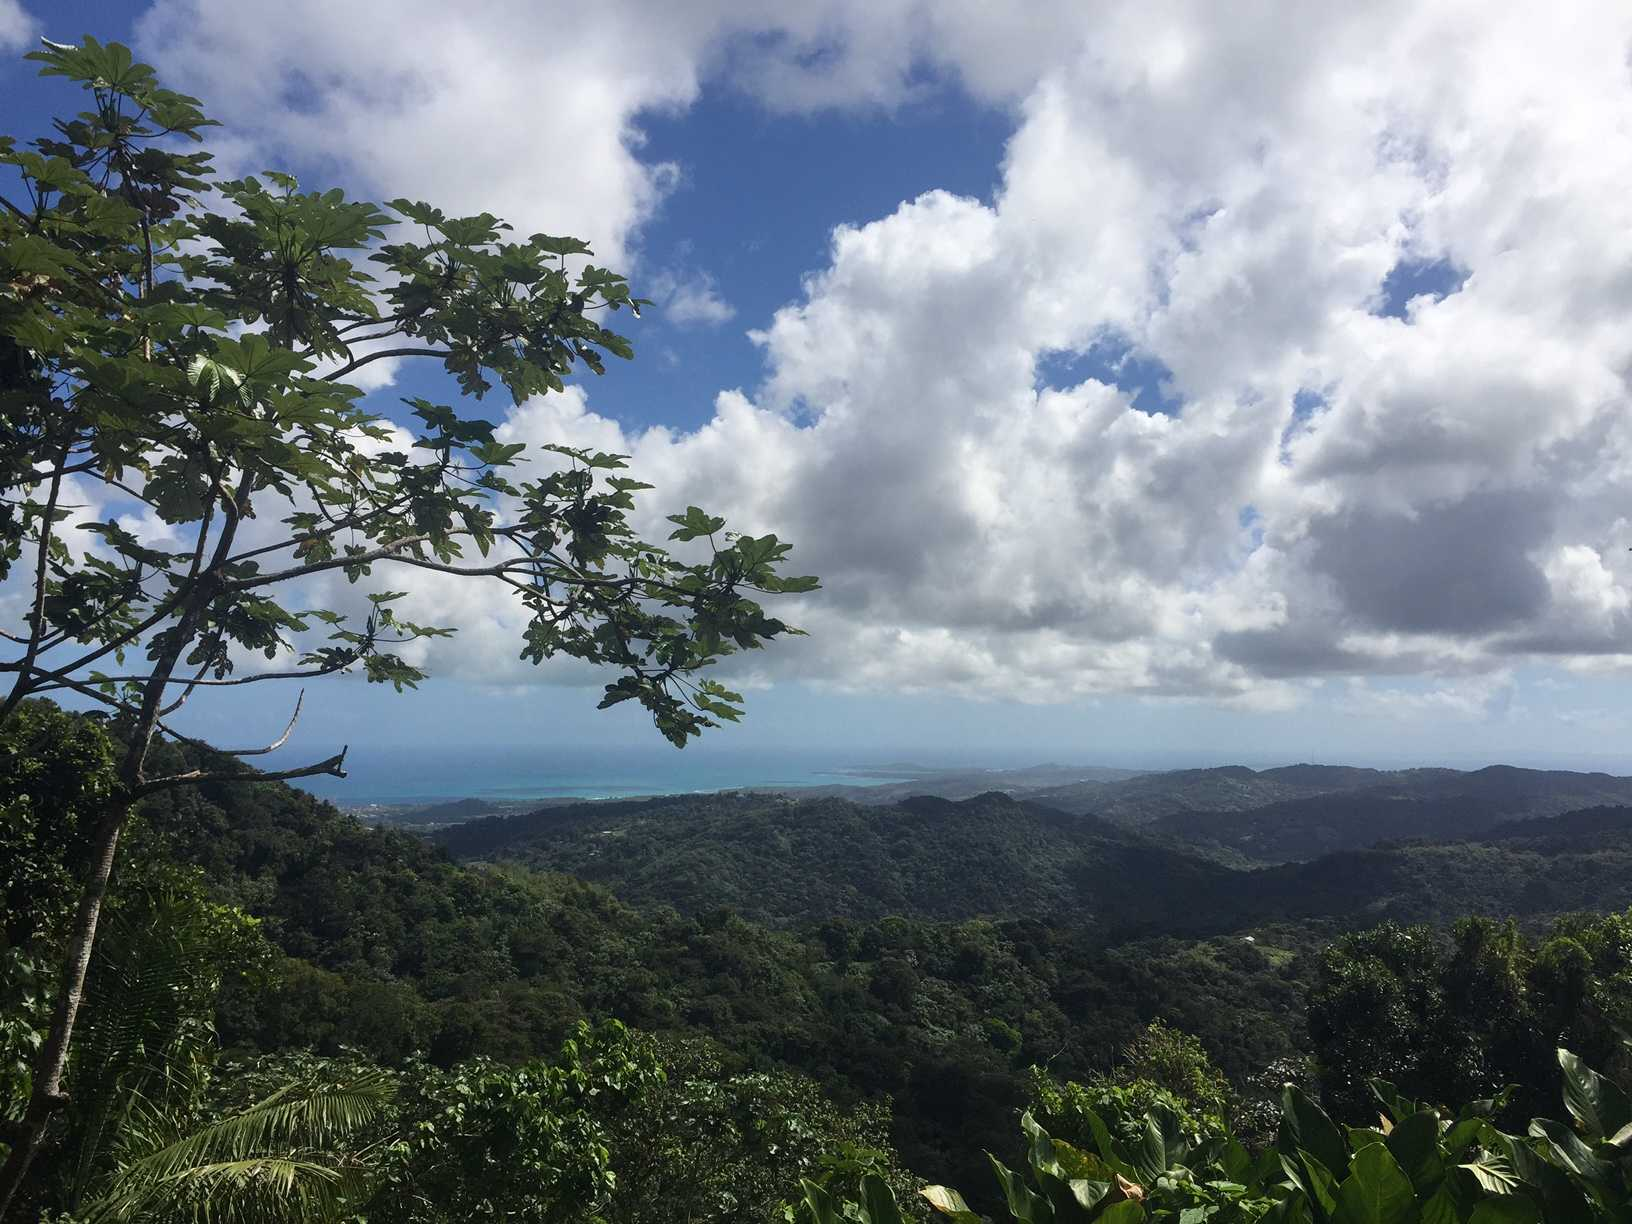 Puerto Rico. Photo provided by Kerrigan Urbi